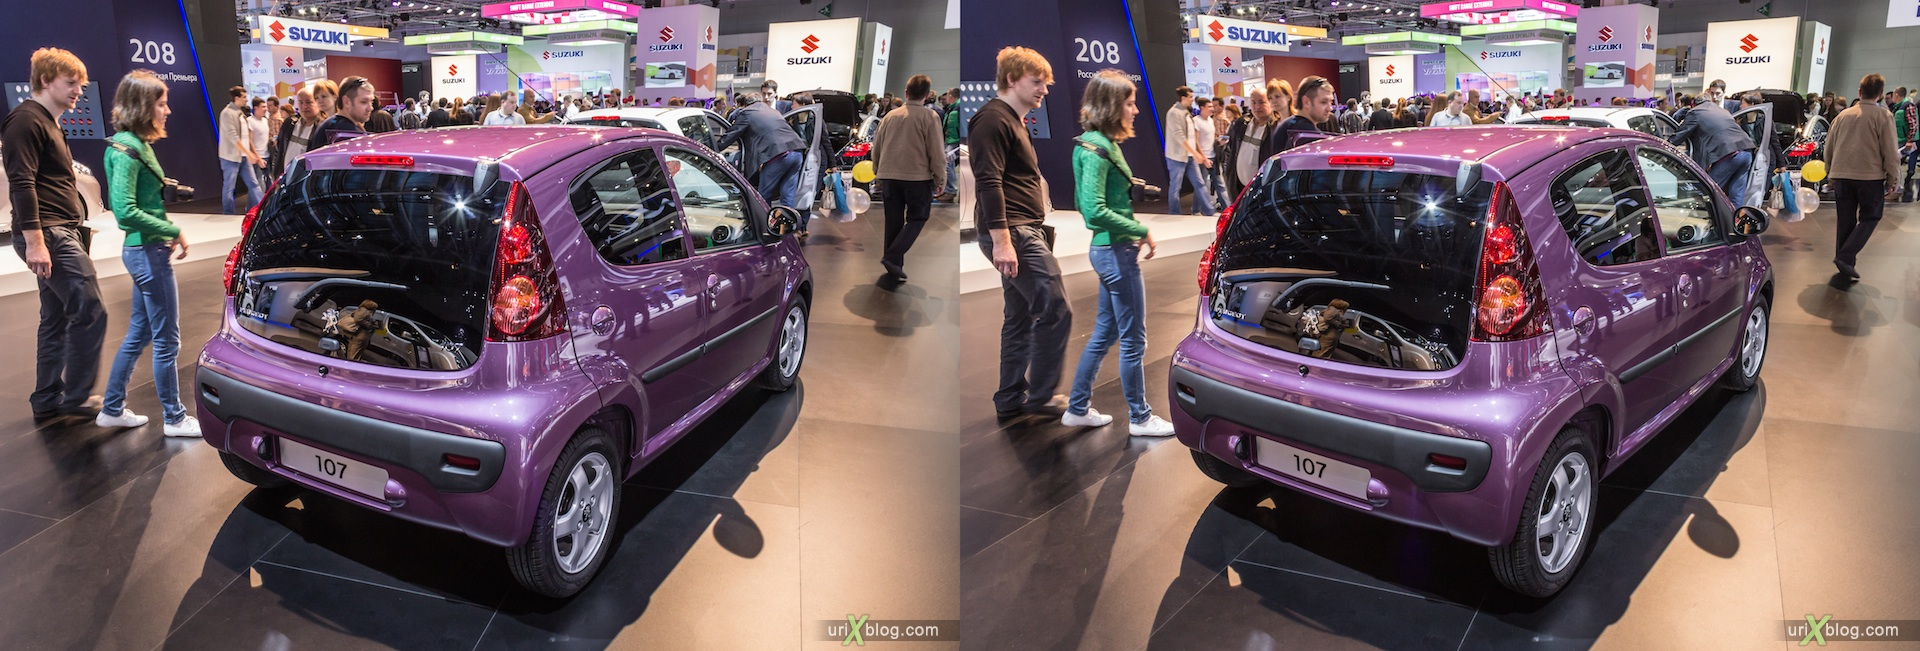 2012, Peugeot 107, Moscow International Automobile Salon, auto show, 3D, stereo pair, cross-eyed, crossview